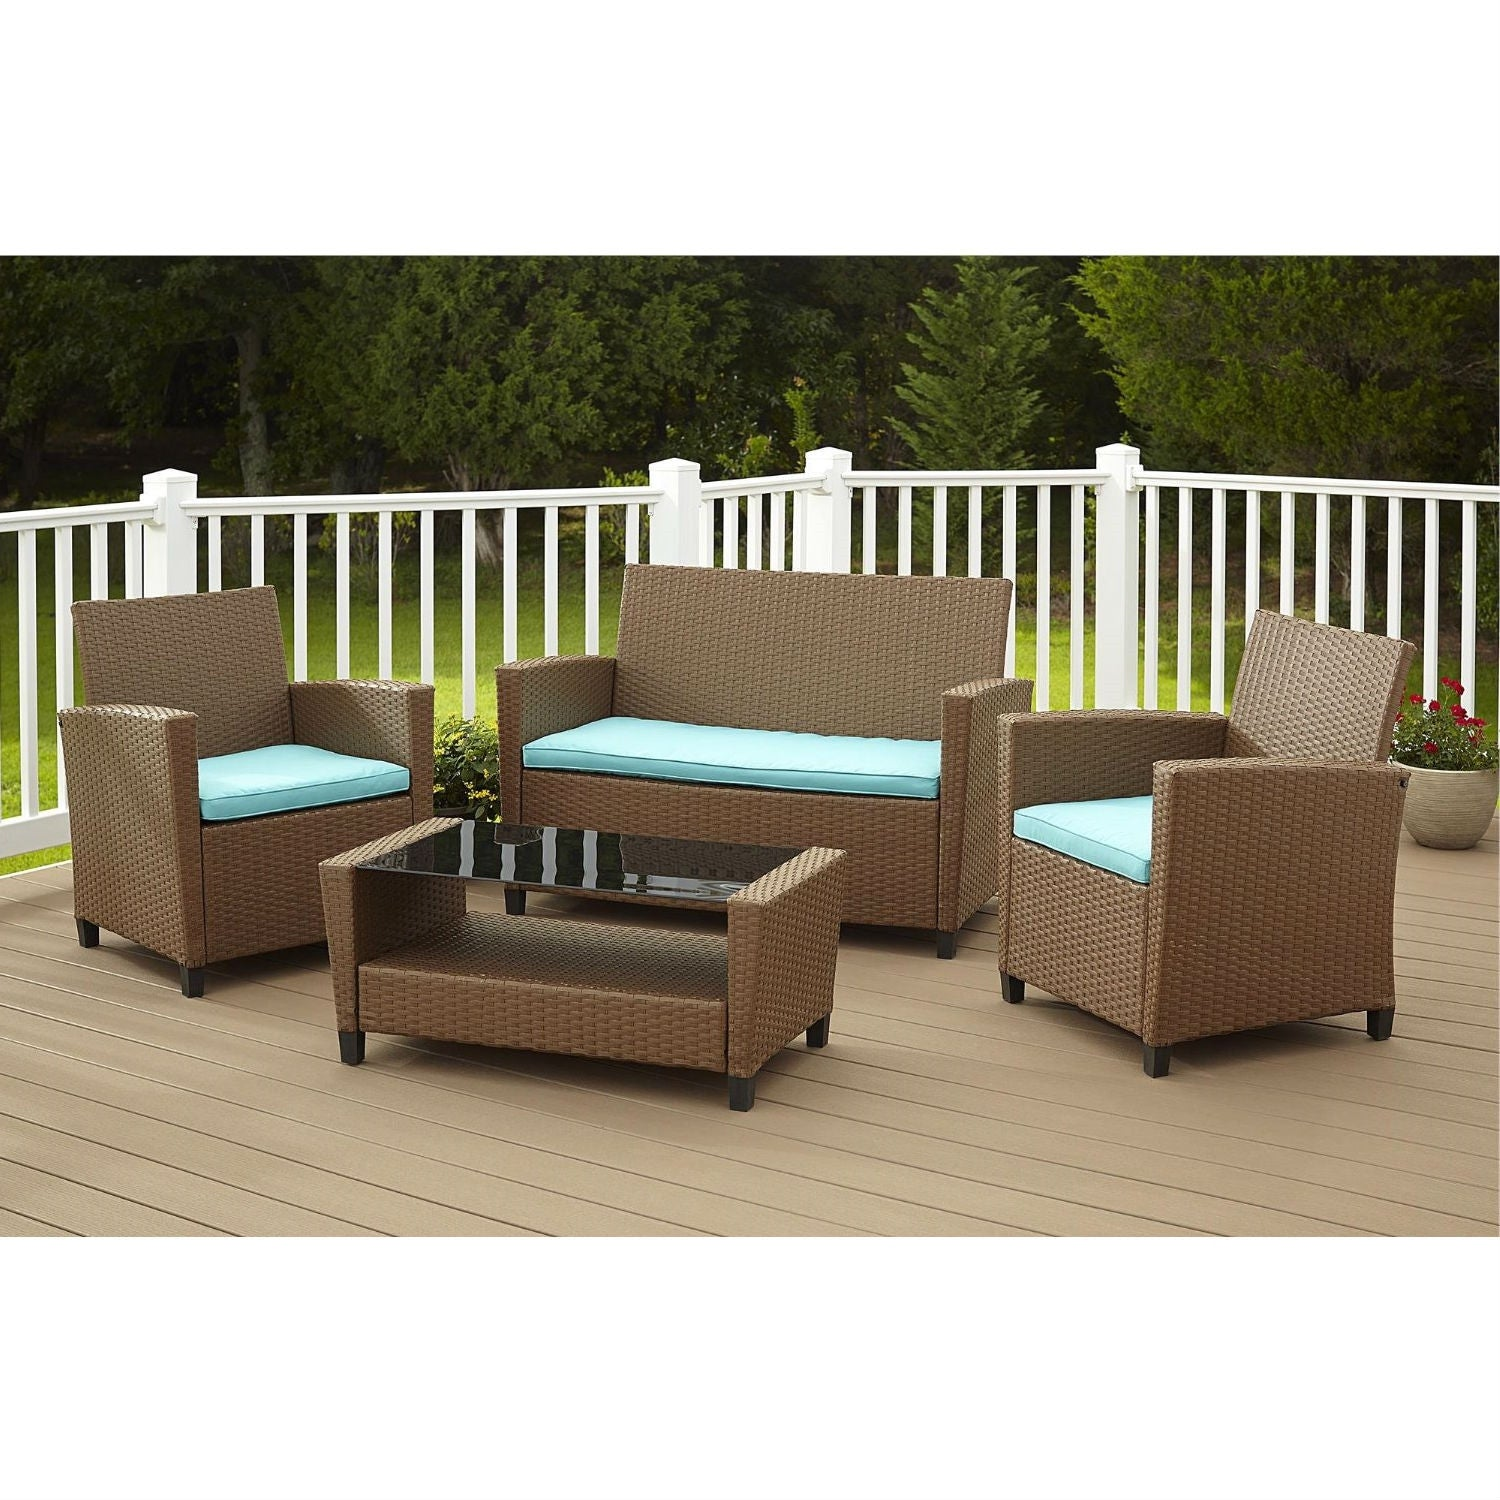 4 Piece Outdoor Patio Furniture Set In Brown Wicker Resin With Teal Cushions